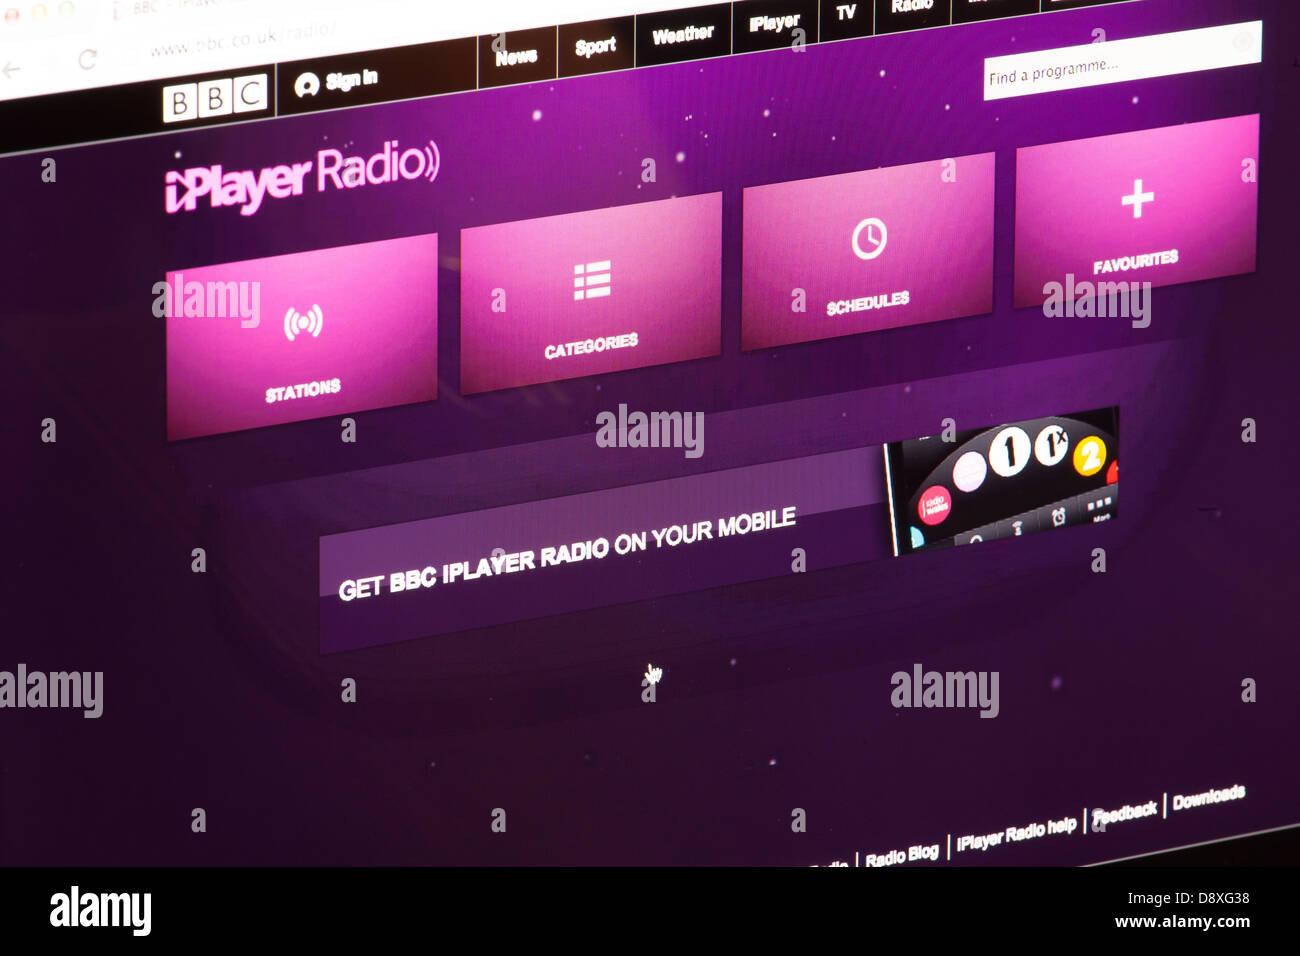 BBC iPlayer radio Website or web page on a laptop screen or computer monitor - Stock Image